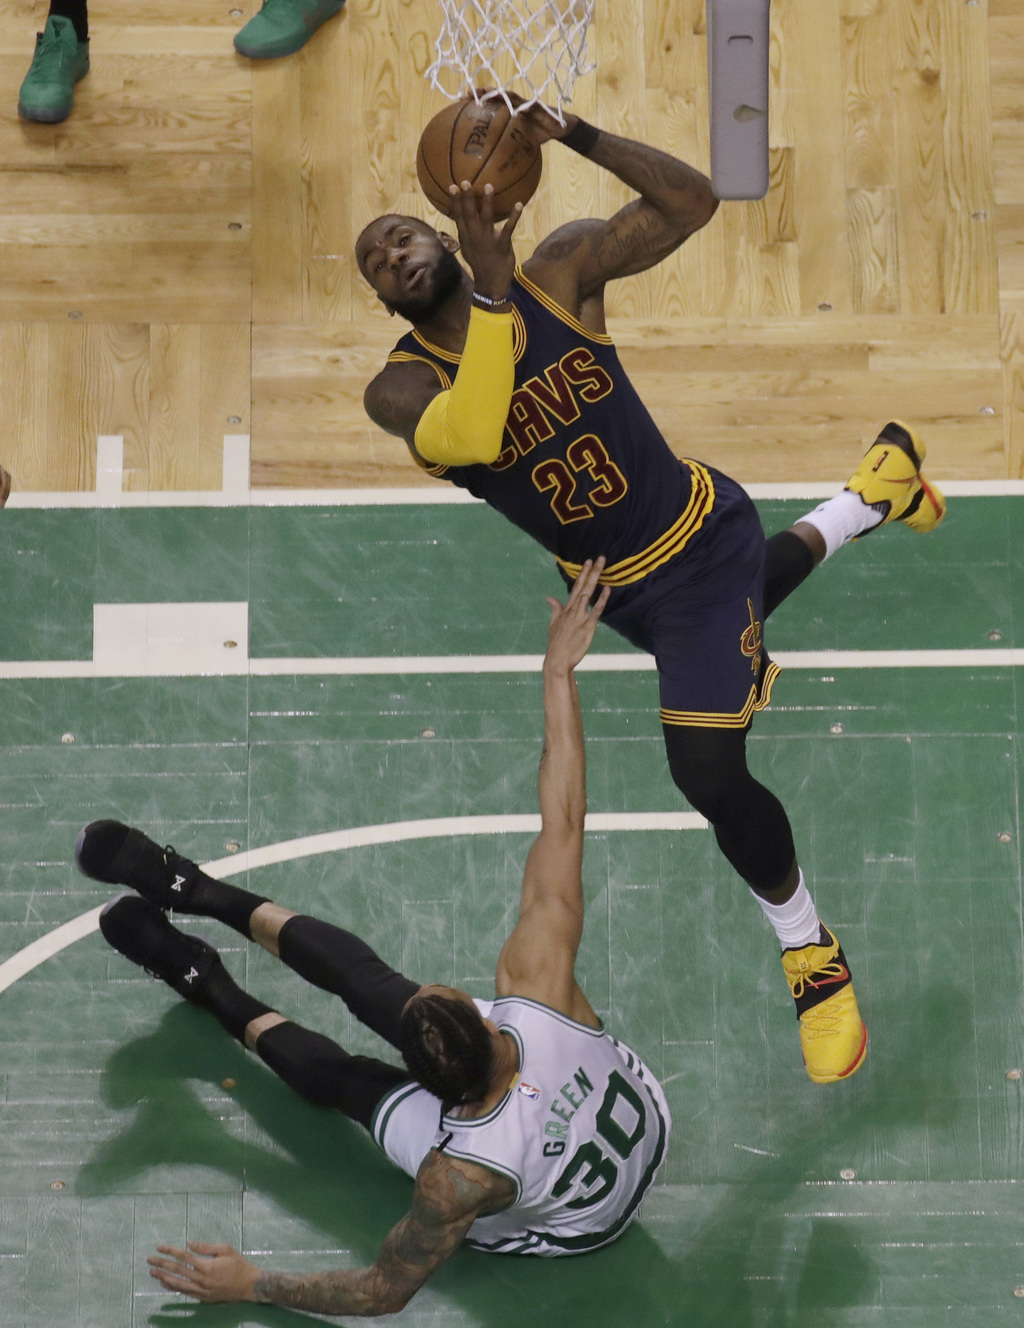 Cleveland Cavaliers forward LeBron James (23) shoots over Boston Celtics forward Gerald Green (30) during first half of Game 2 of the N...